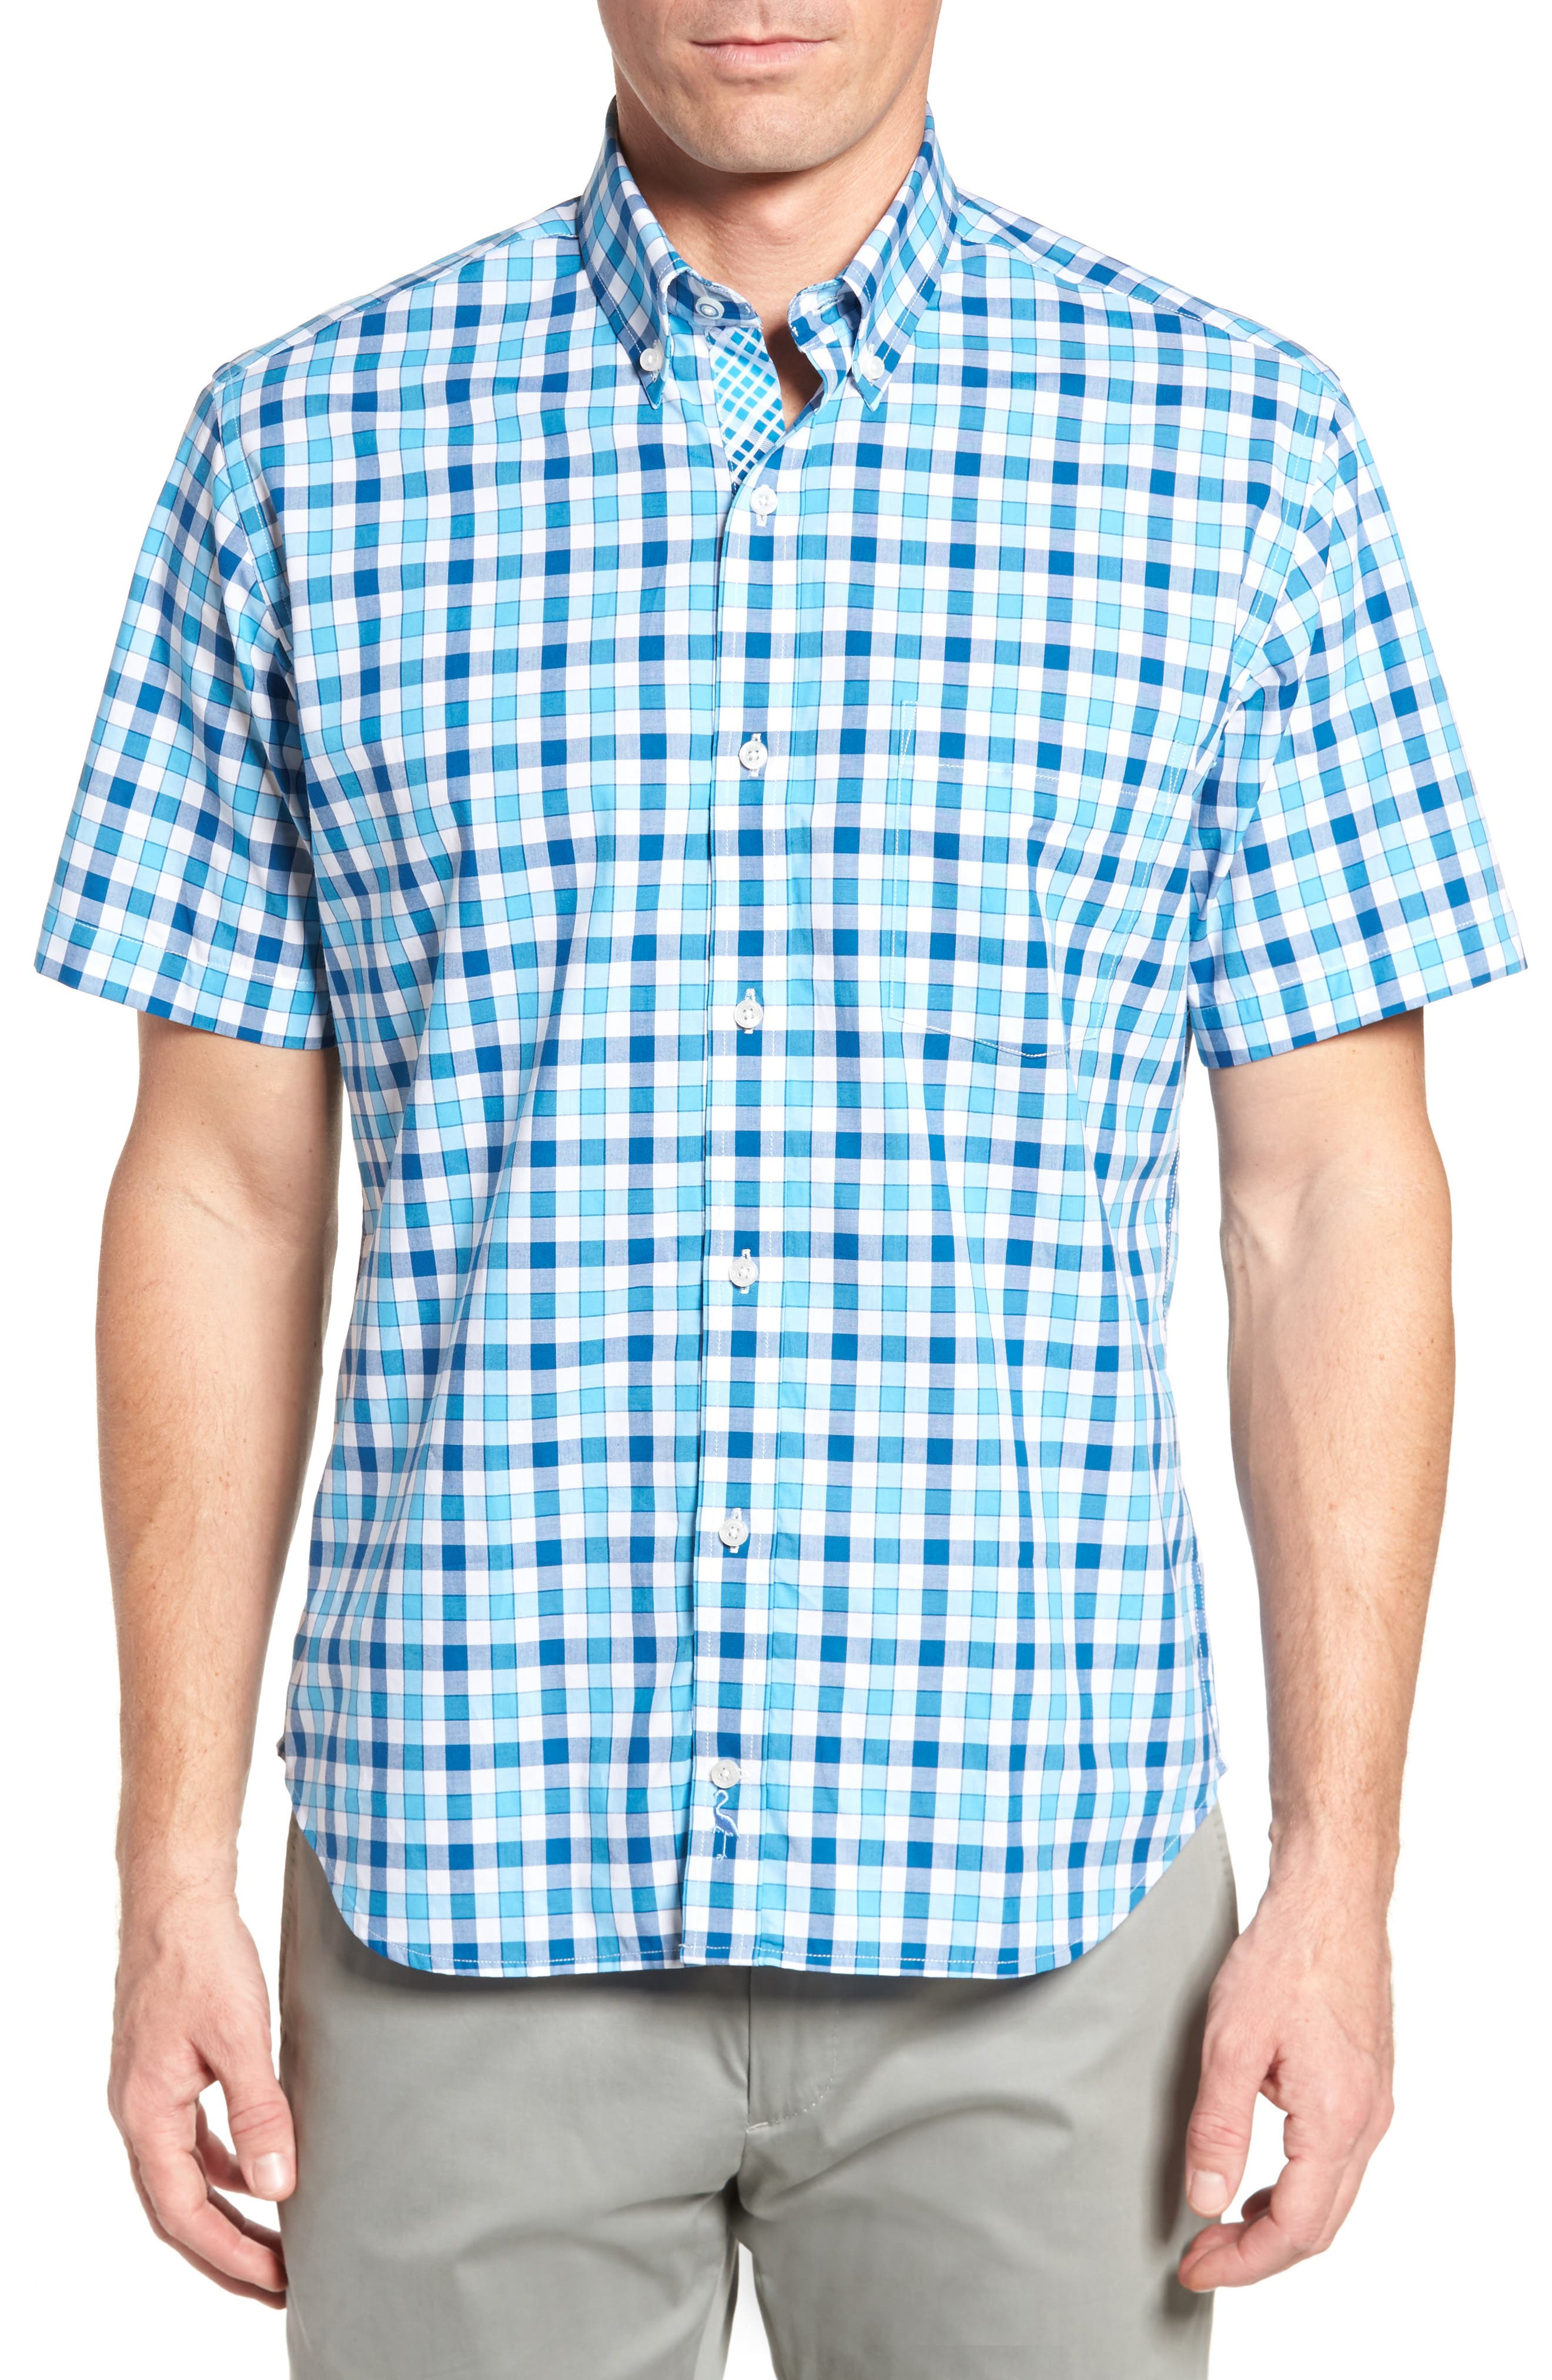 West We Go Regular Fit Plaid Sport Shirt,                         Main,                         color, 465